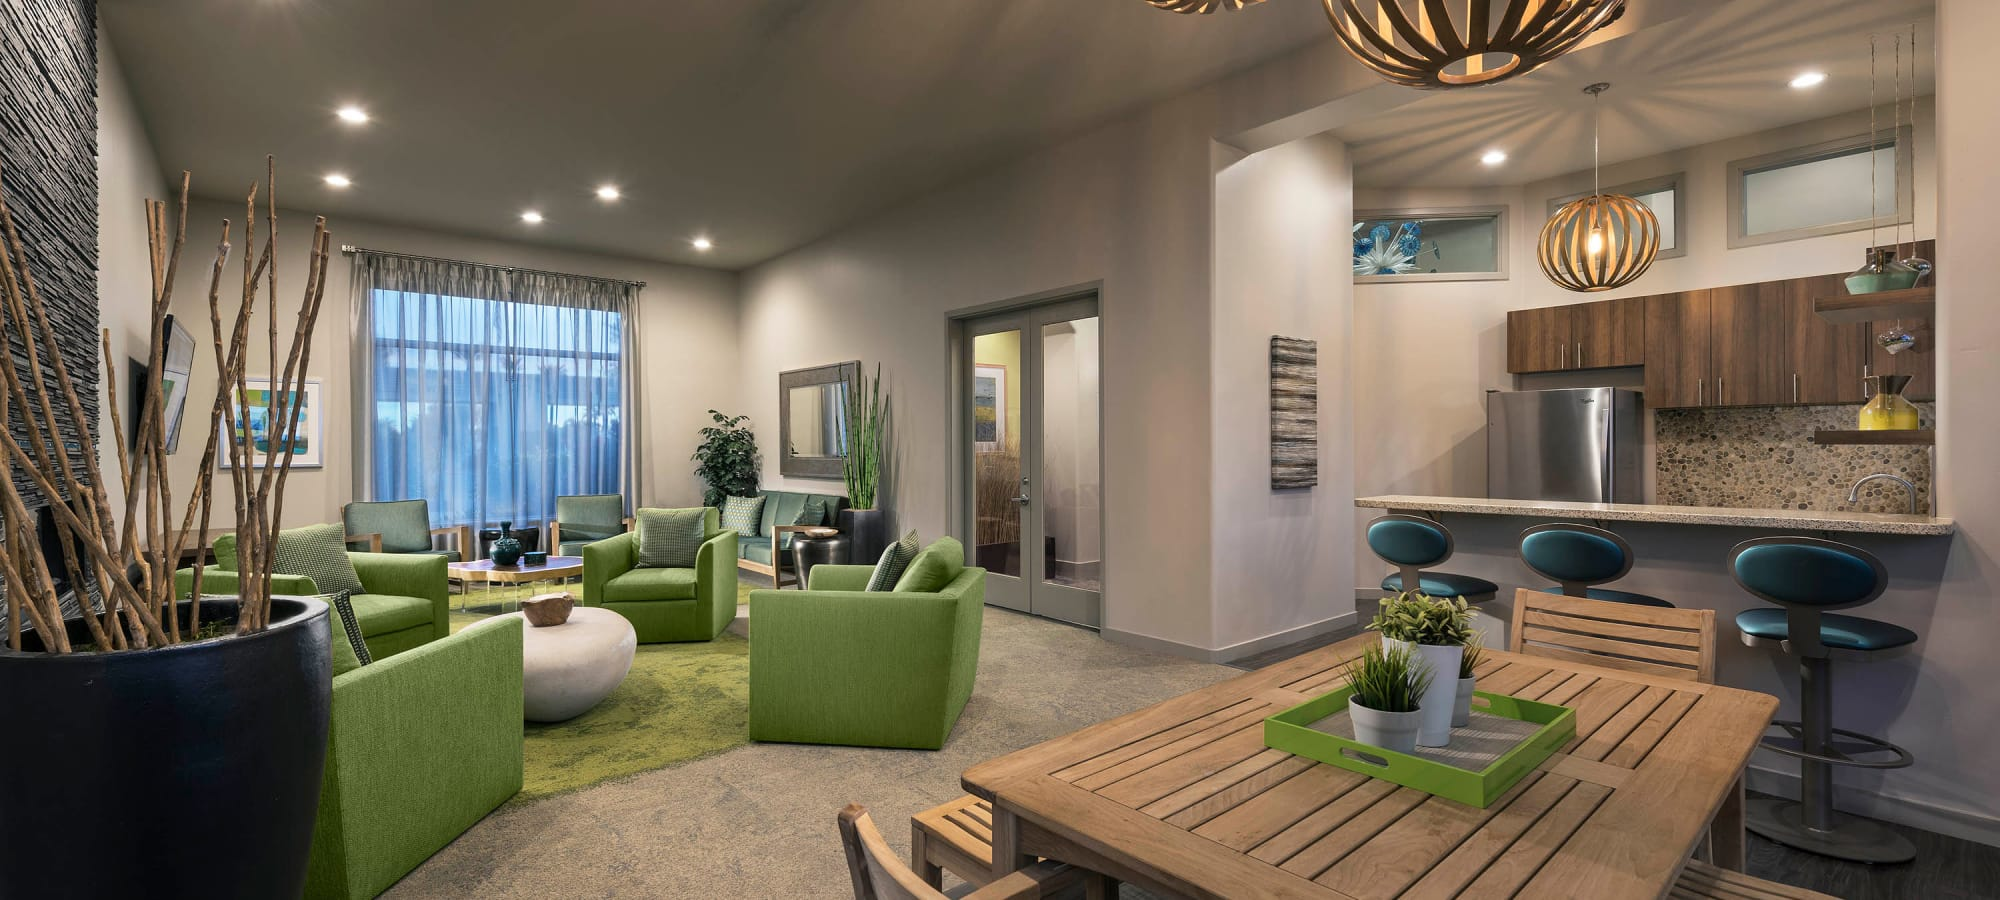 Modern decor in the resident clubhouse at Mira Santi in Chandler, Arizona